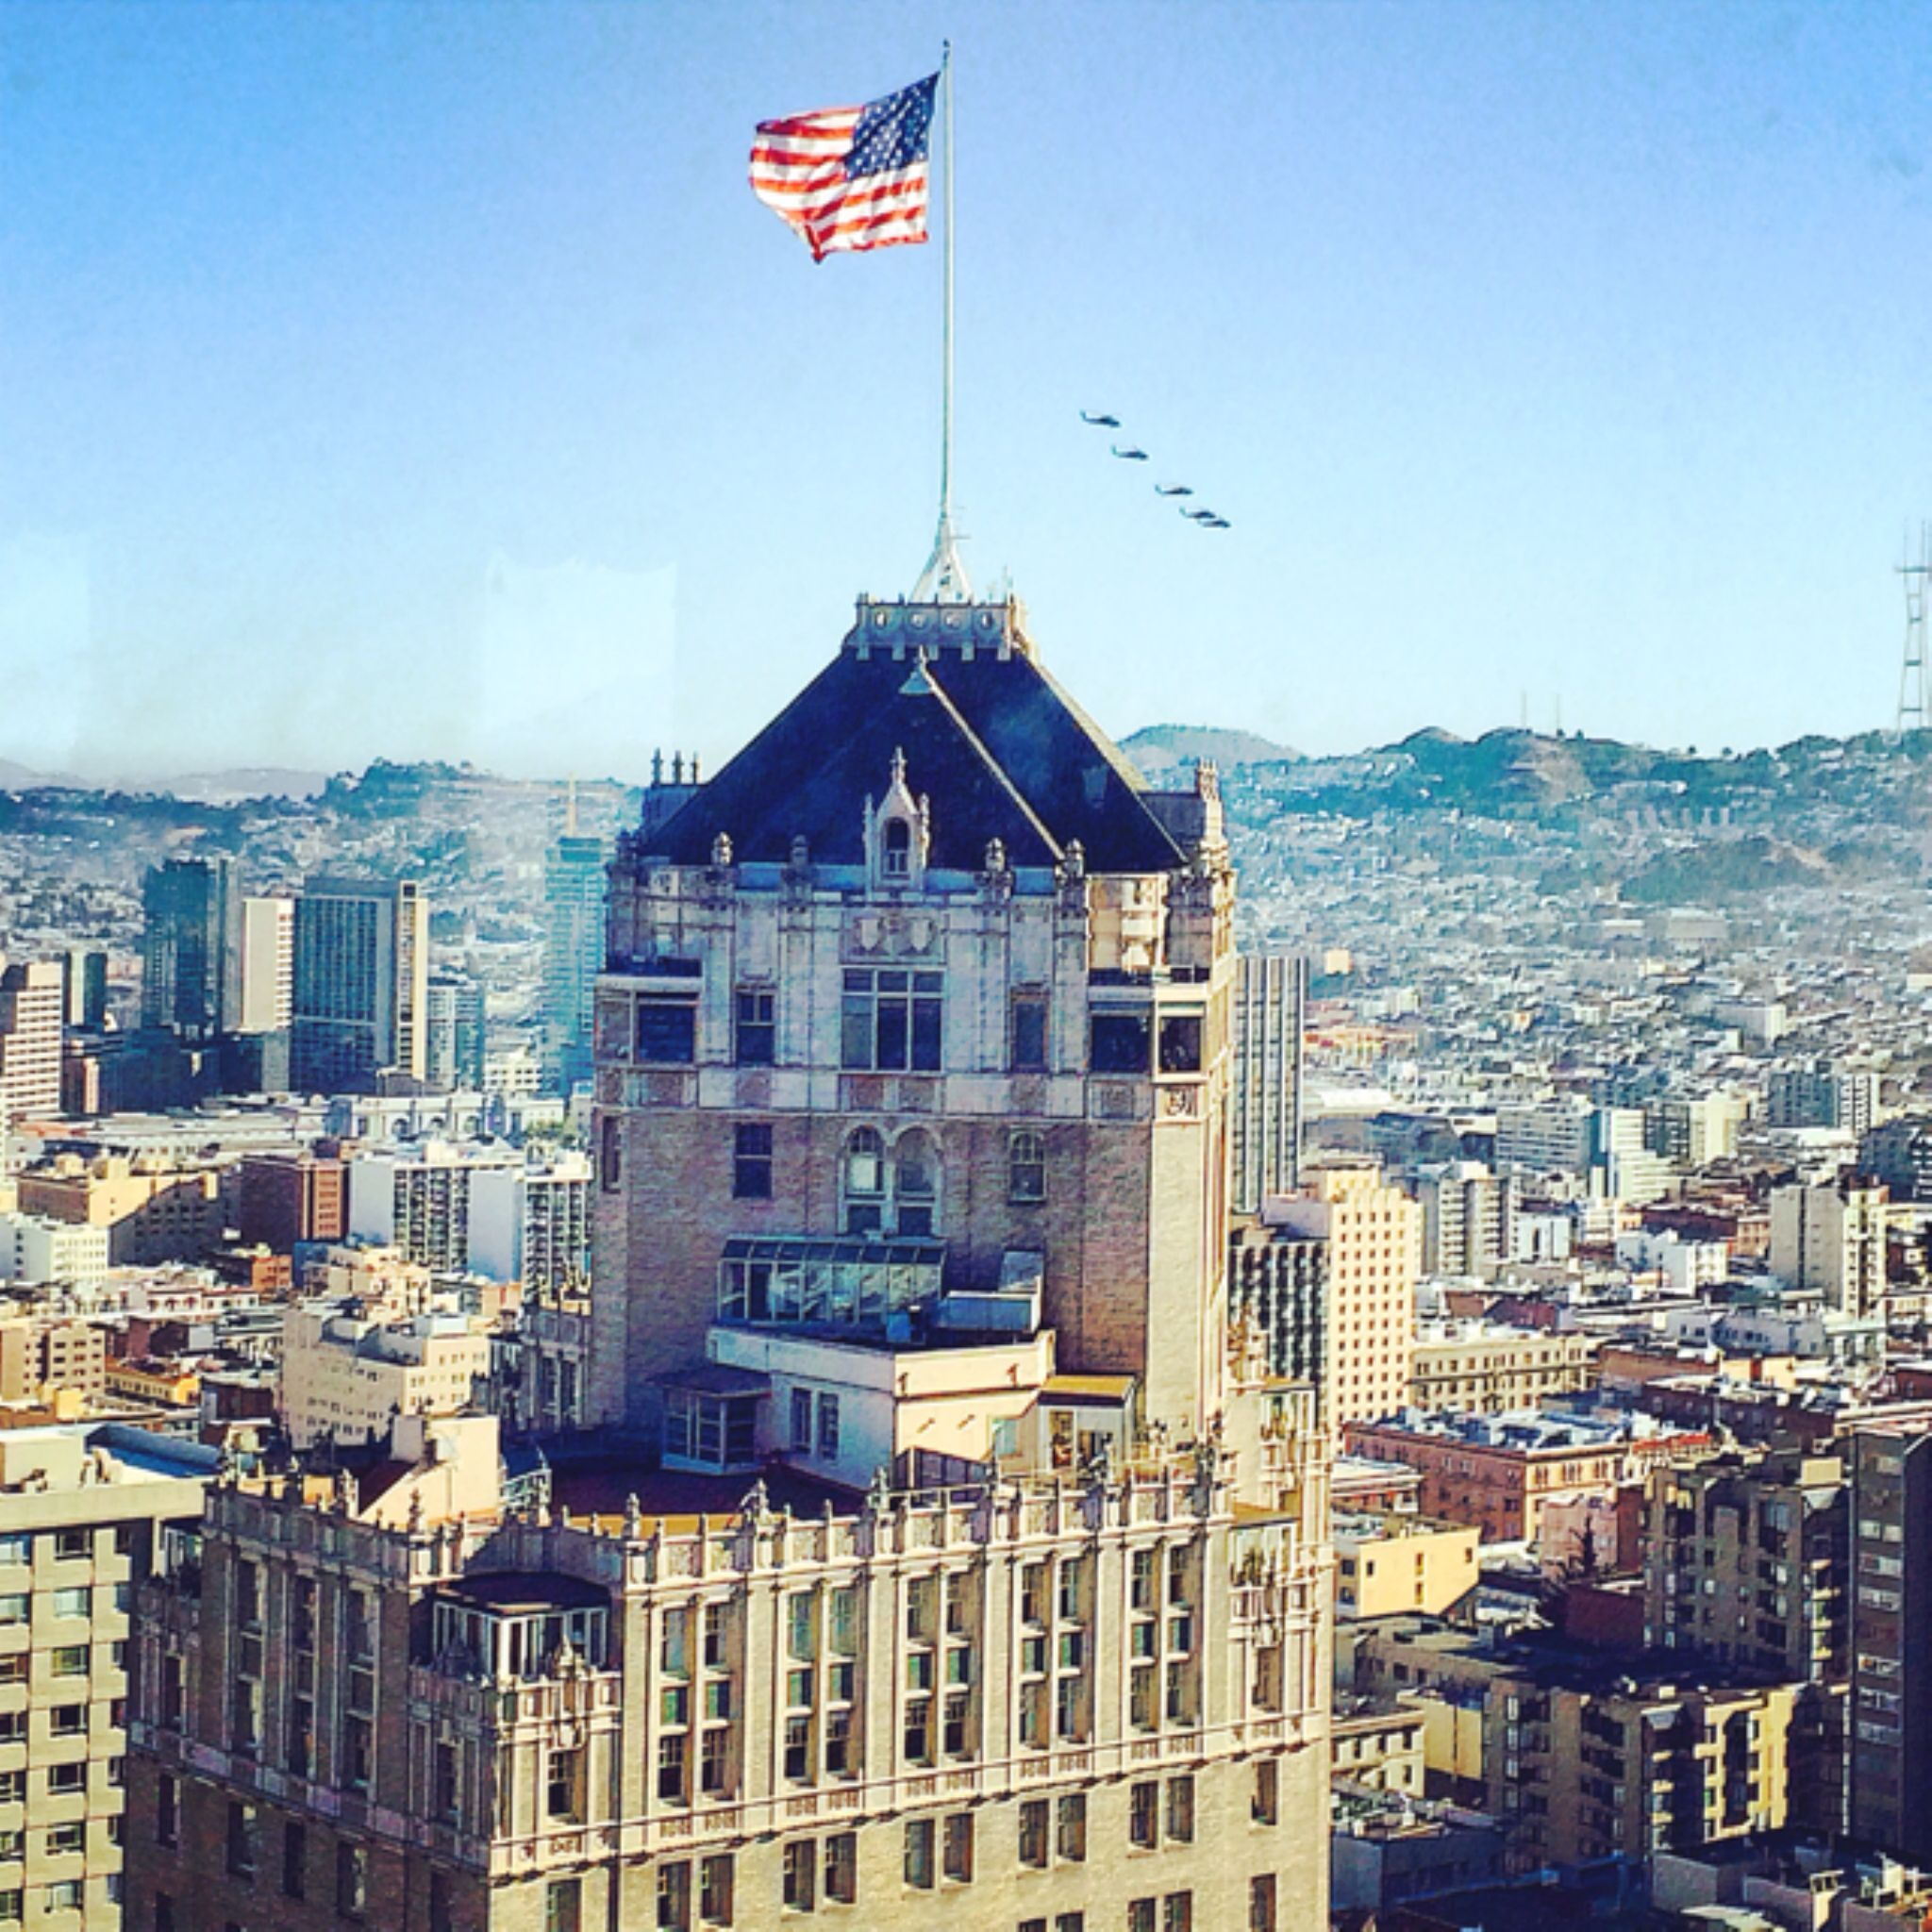 High SF and 5 helicopters by davidperea